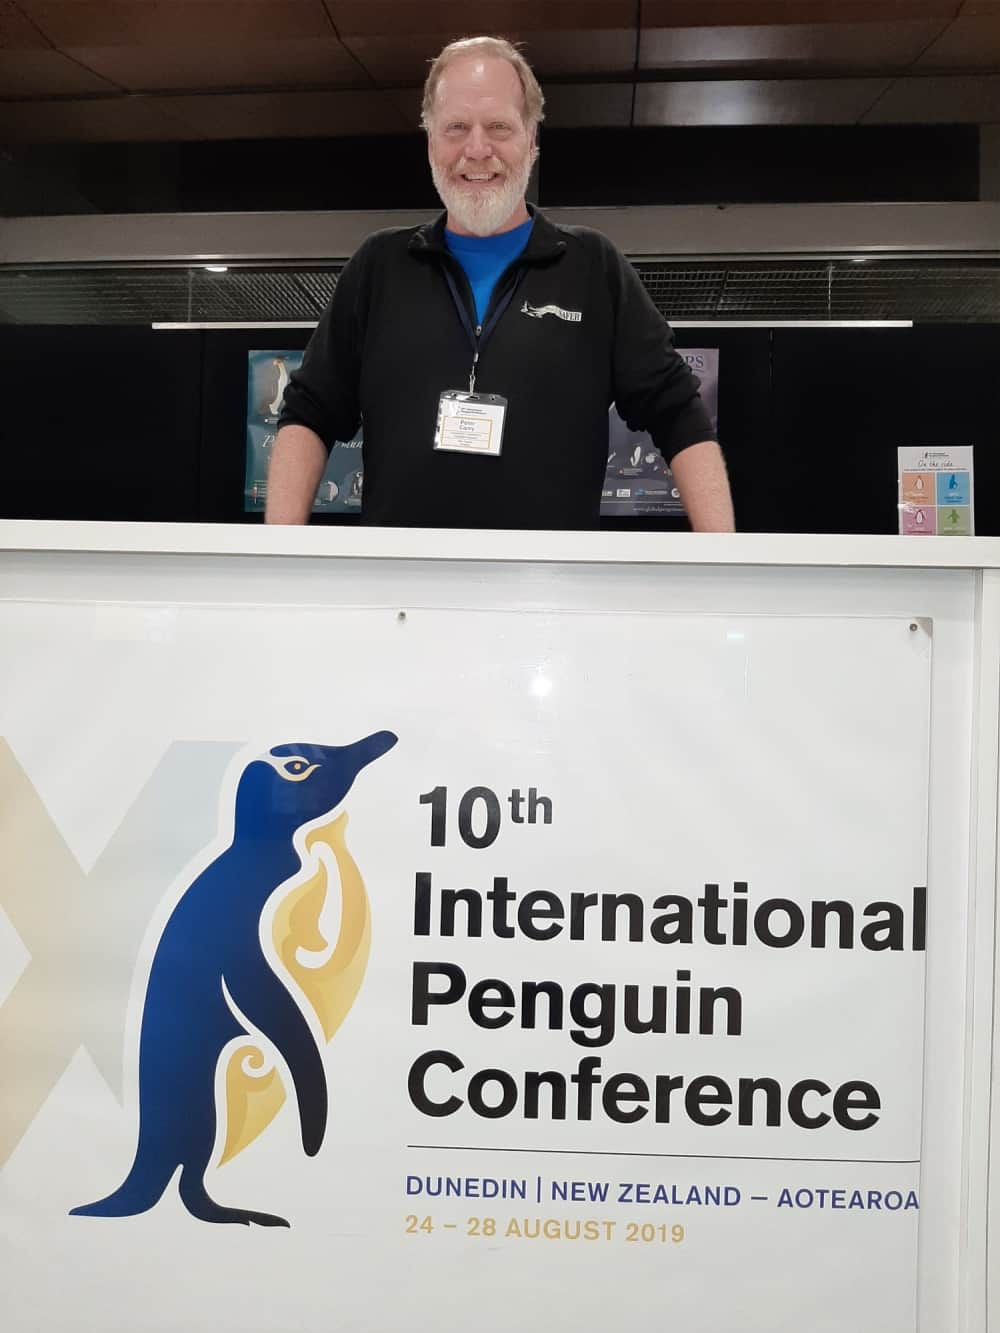 Dr Carey at the Interntaional Penguin Conference